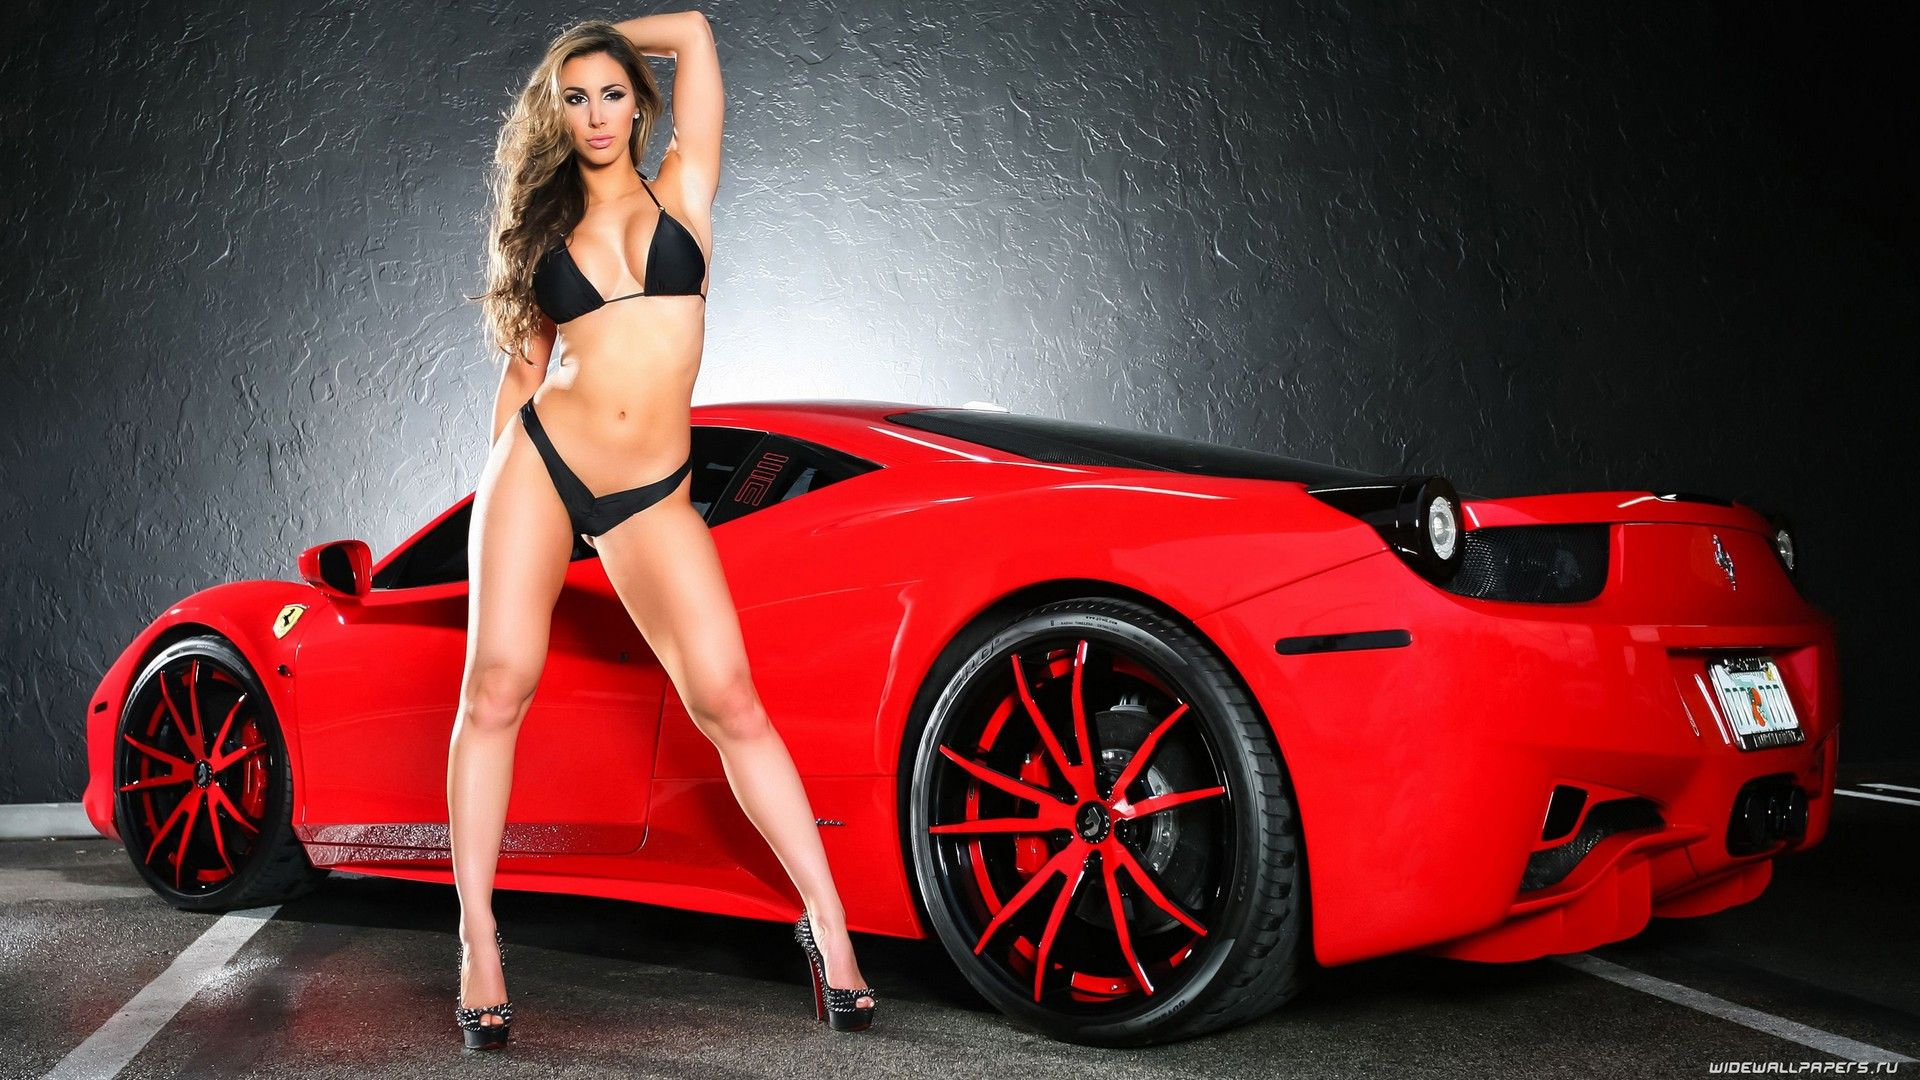 Pron Girl Wallpaper Beautiful hd girl and ferrari wallpaper | girl and ferrari wallpapers hd